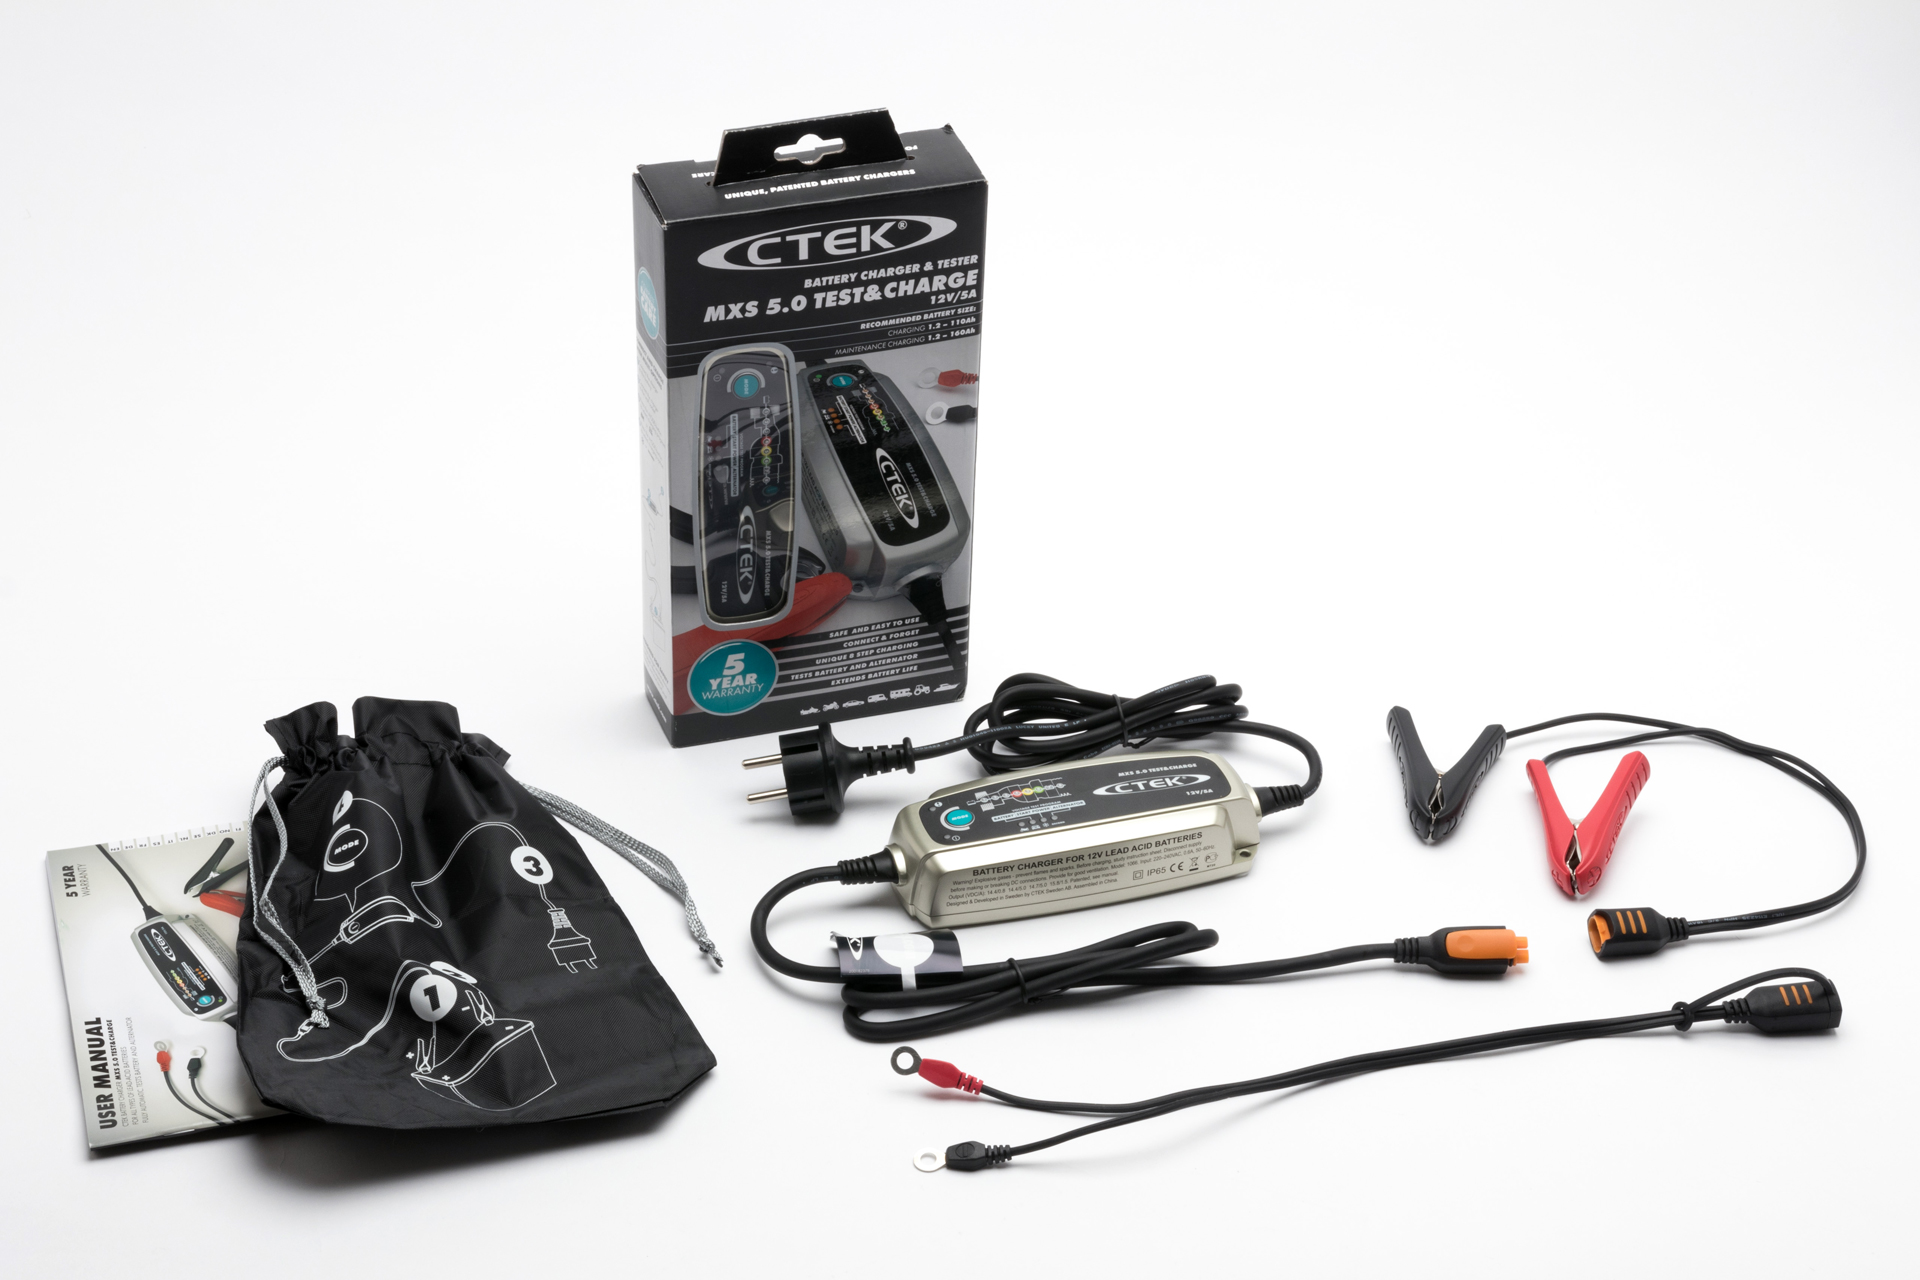 Ctek mxs7.0 Battery Charger 5 year warranty